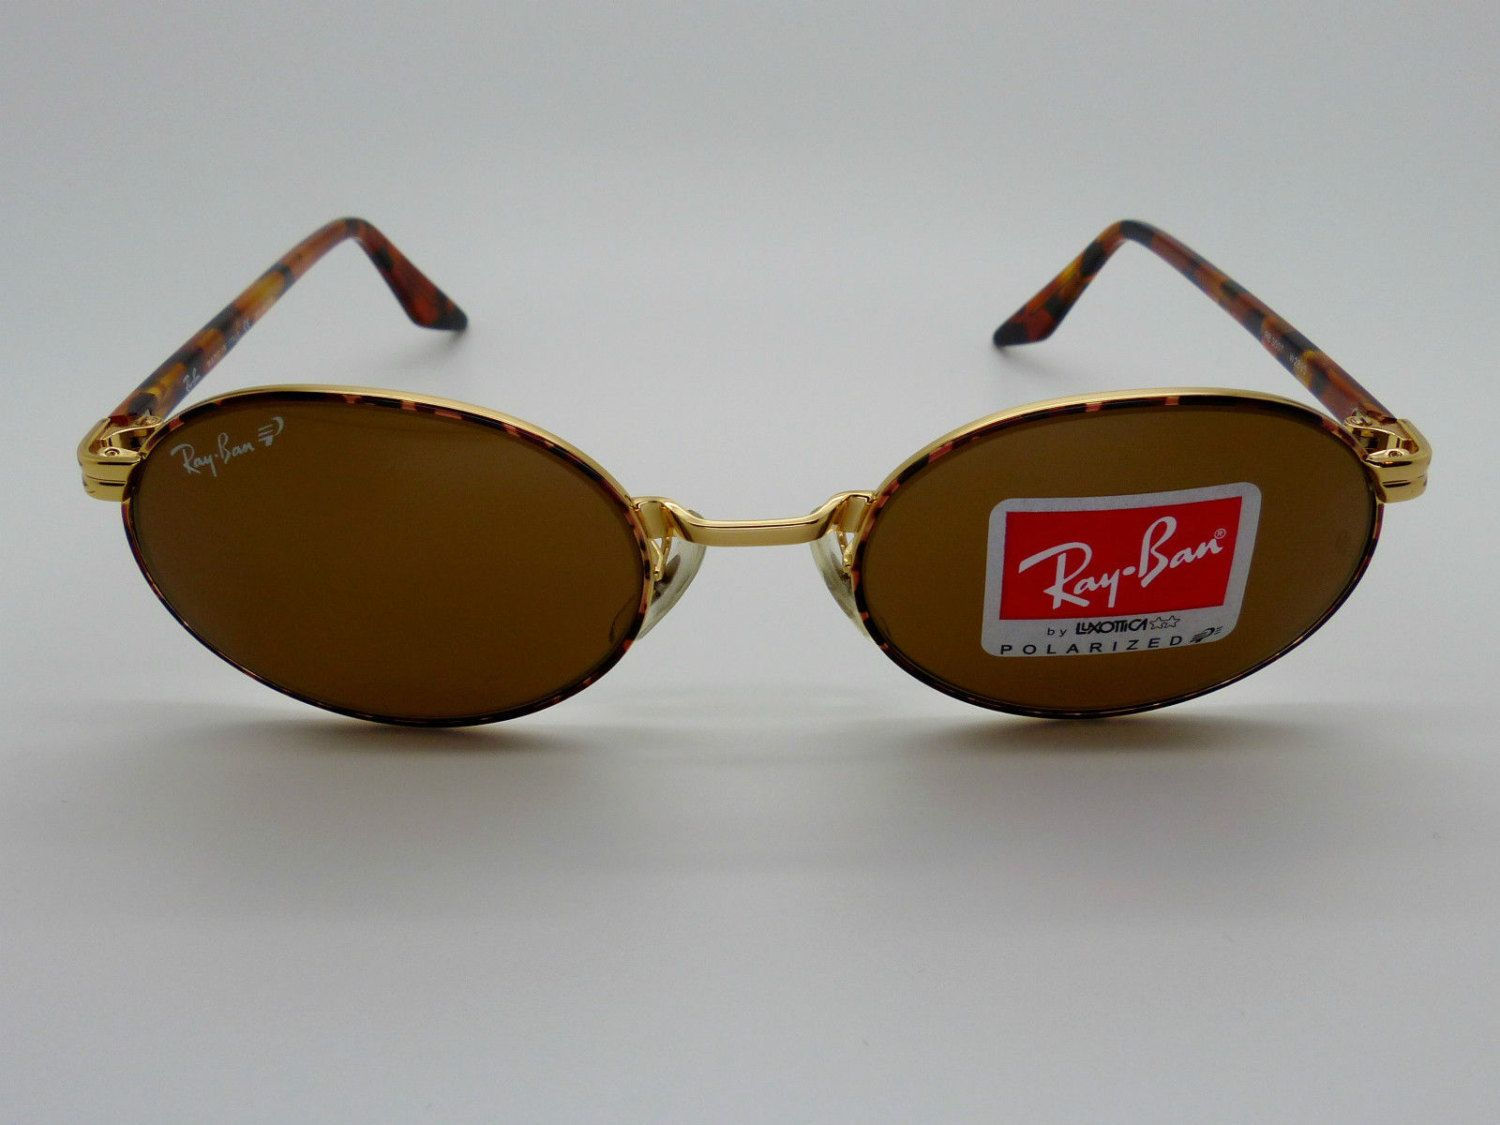 Ray Ban W2895 Sidestreet Polarised B&L B-15 Lenses *Unisex Small* New! by VSOx on Etsy